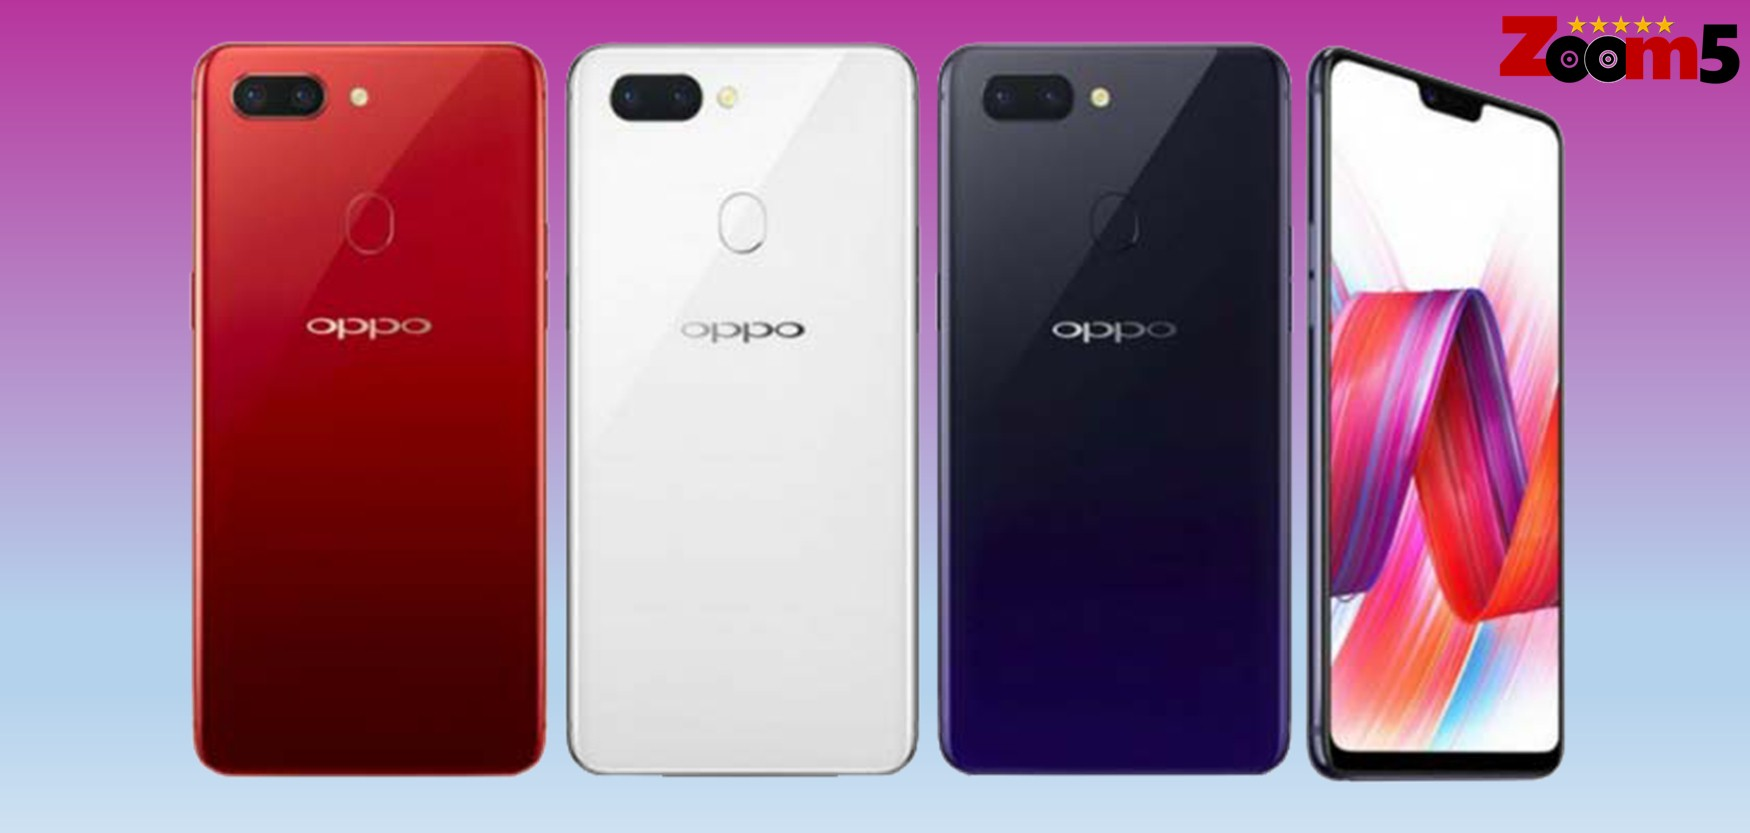 Oppo f7 colors